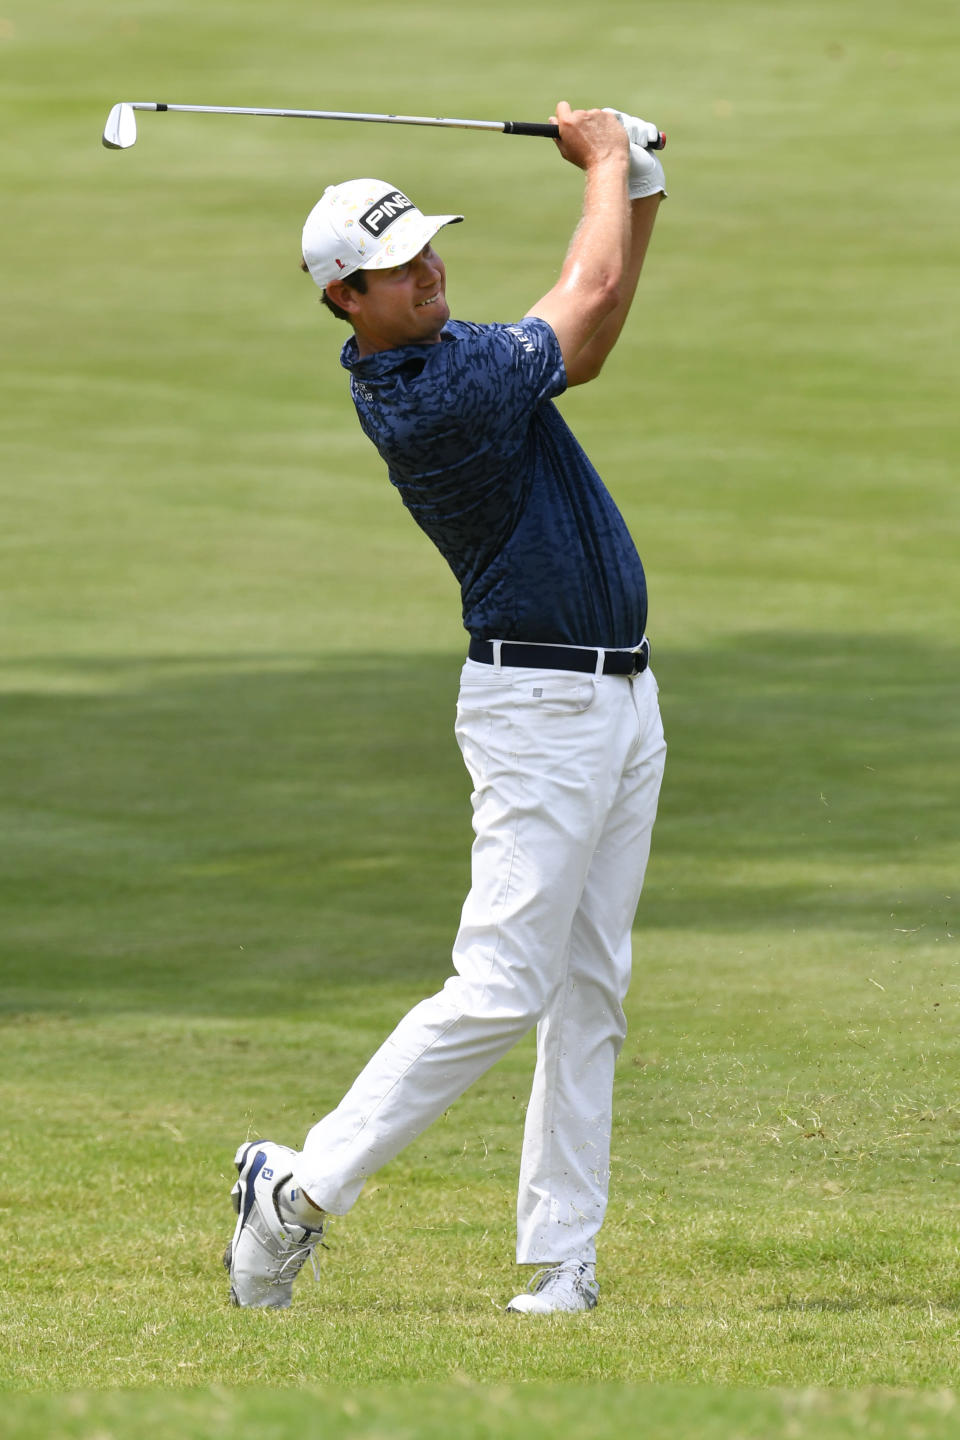 Harris English hits on 10th hole during the first round in the World Golf Championship-FedEx St. Jude Invitational tournament, Thursday, Aug. 5, 2021, in Memphis, Tenn. (AP Photo/John Amis)